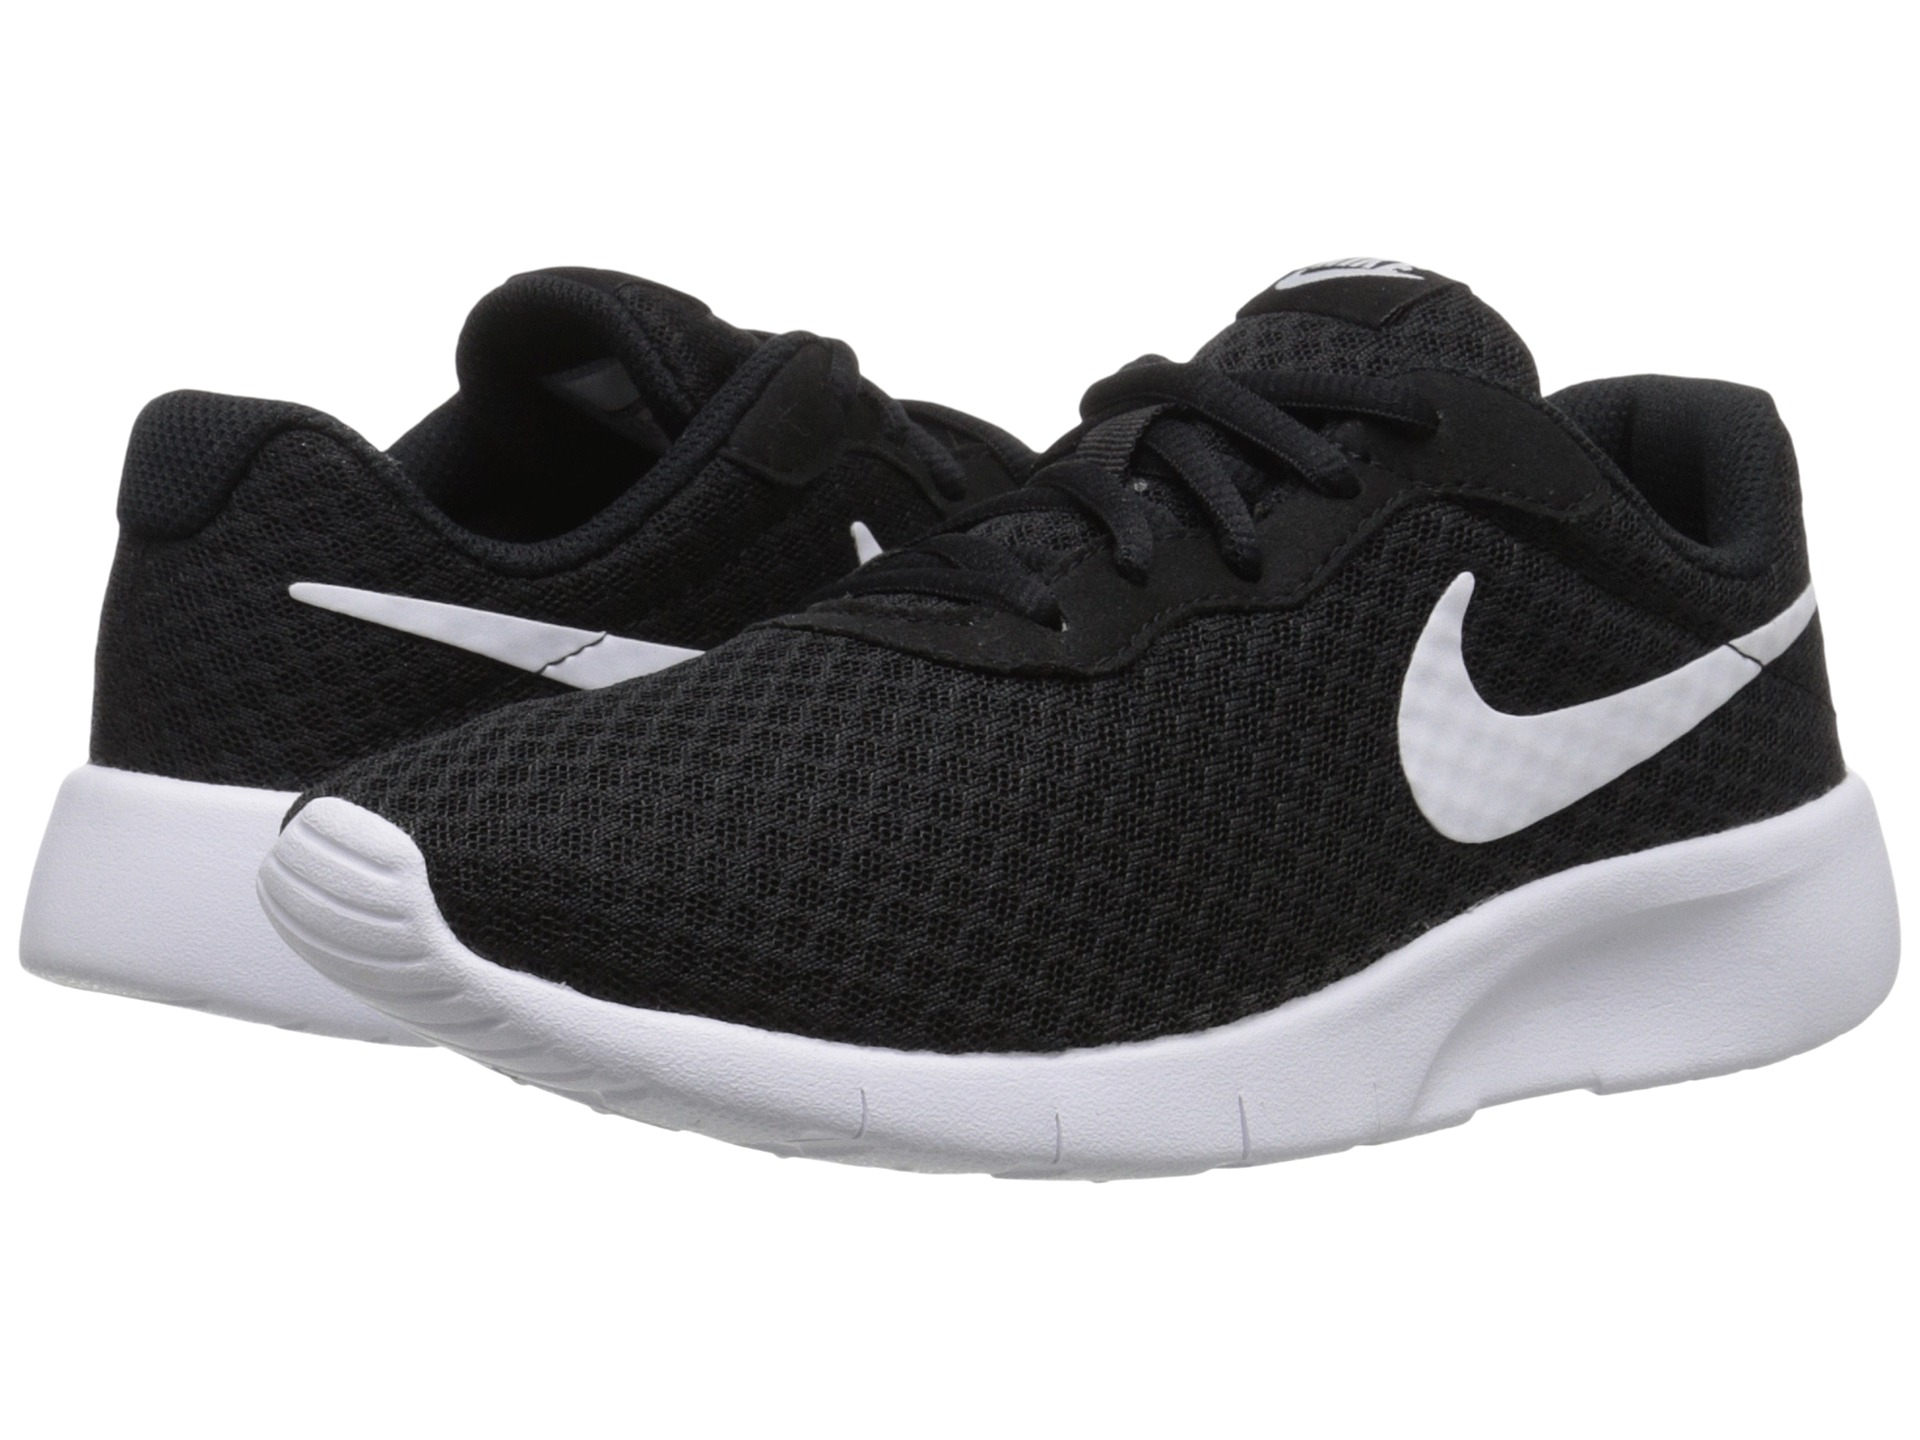 Nike Tanjun Women S Athletic Shoes White And Black